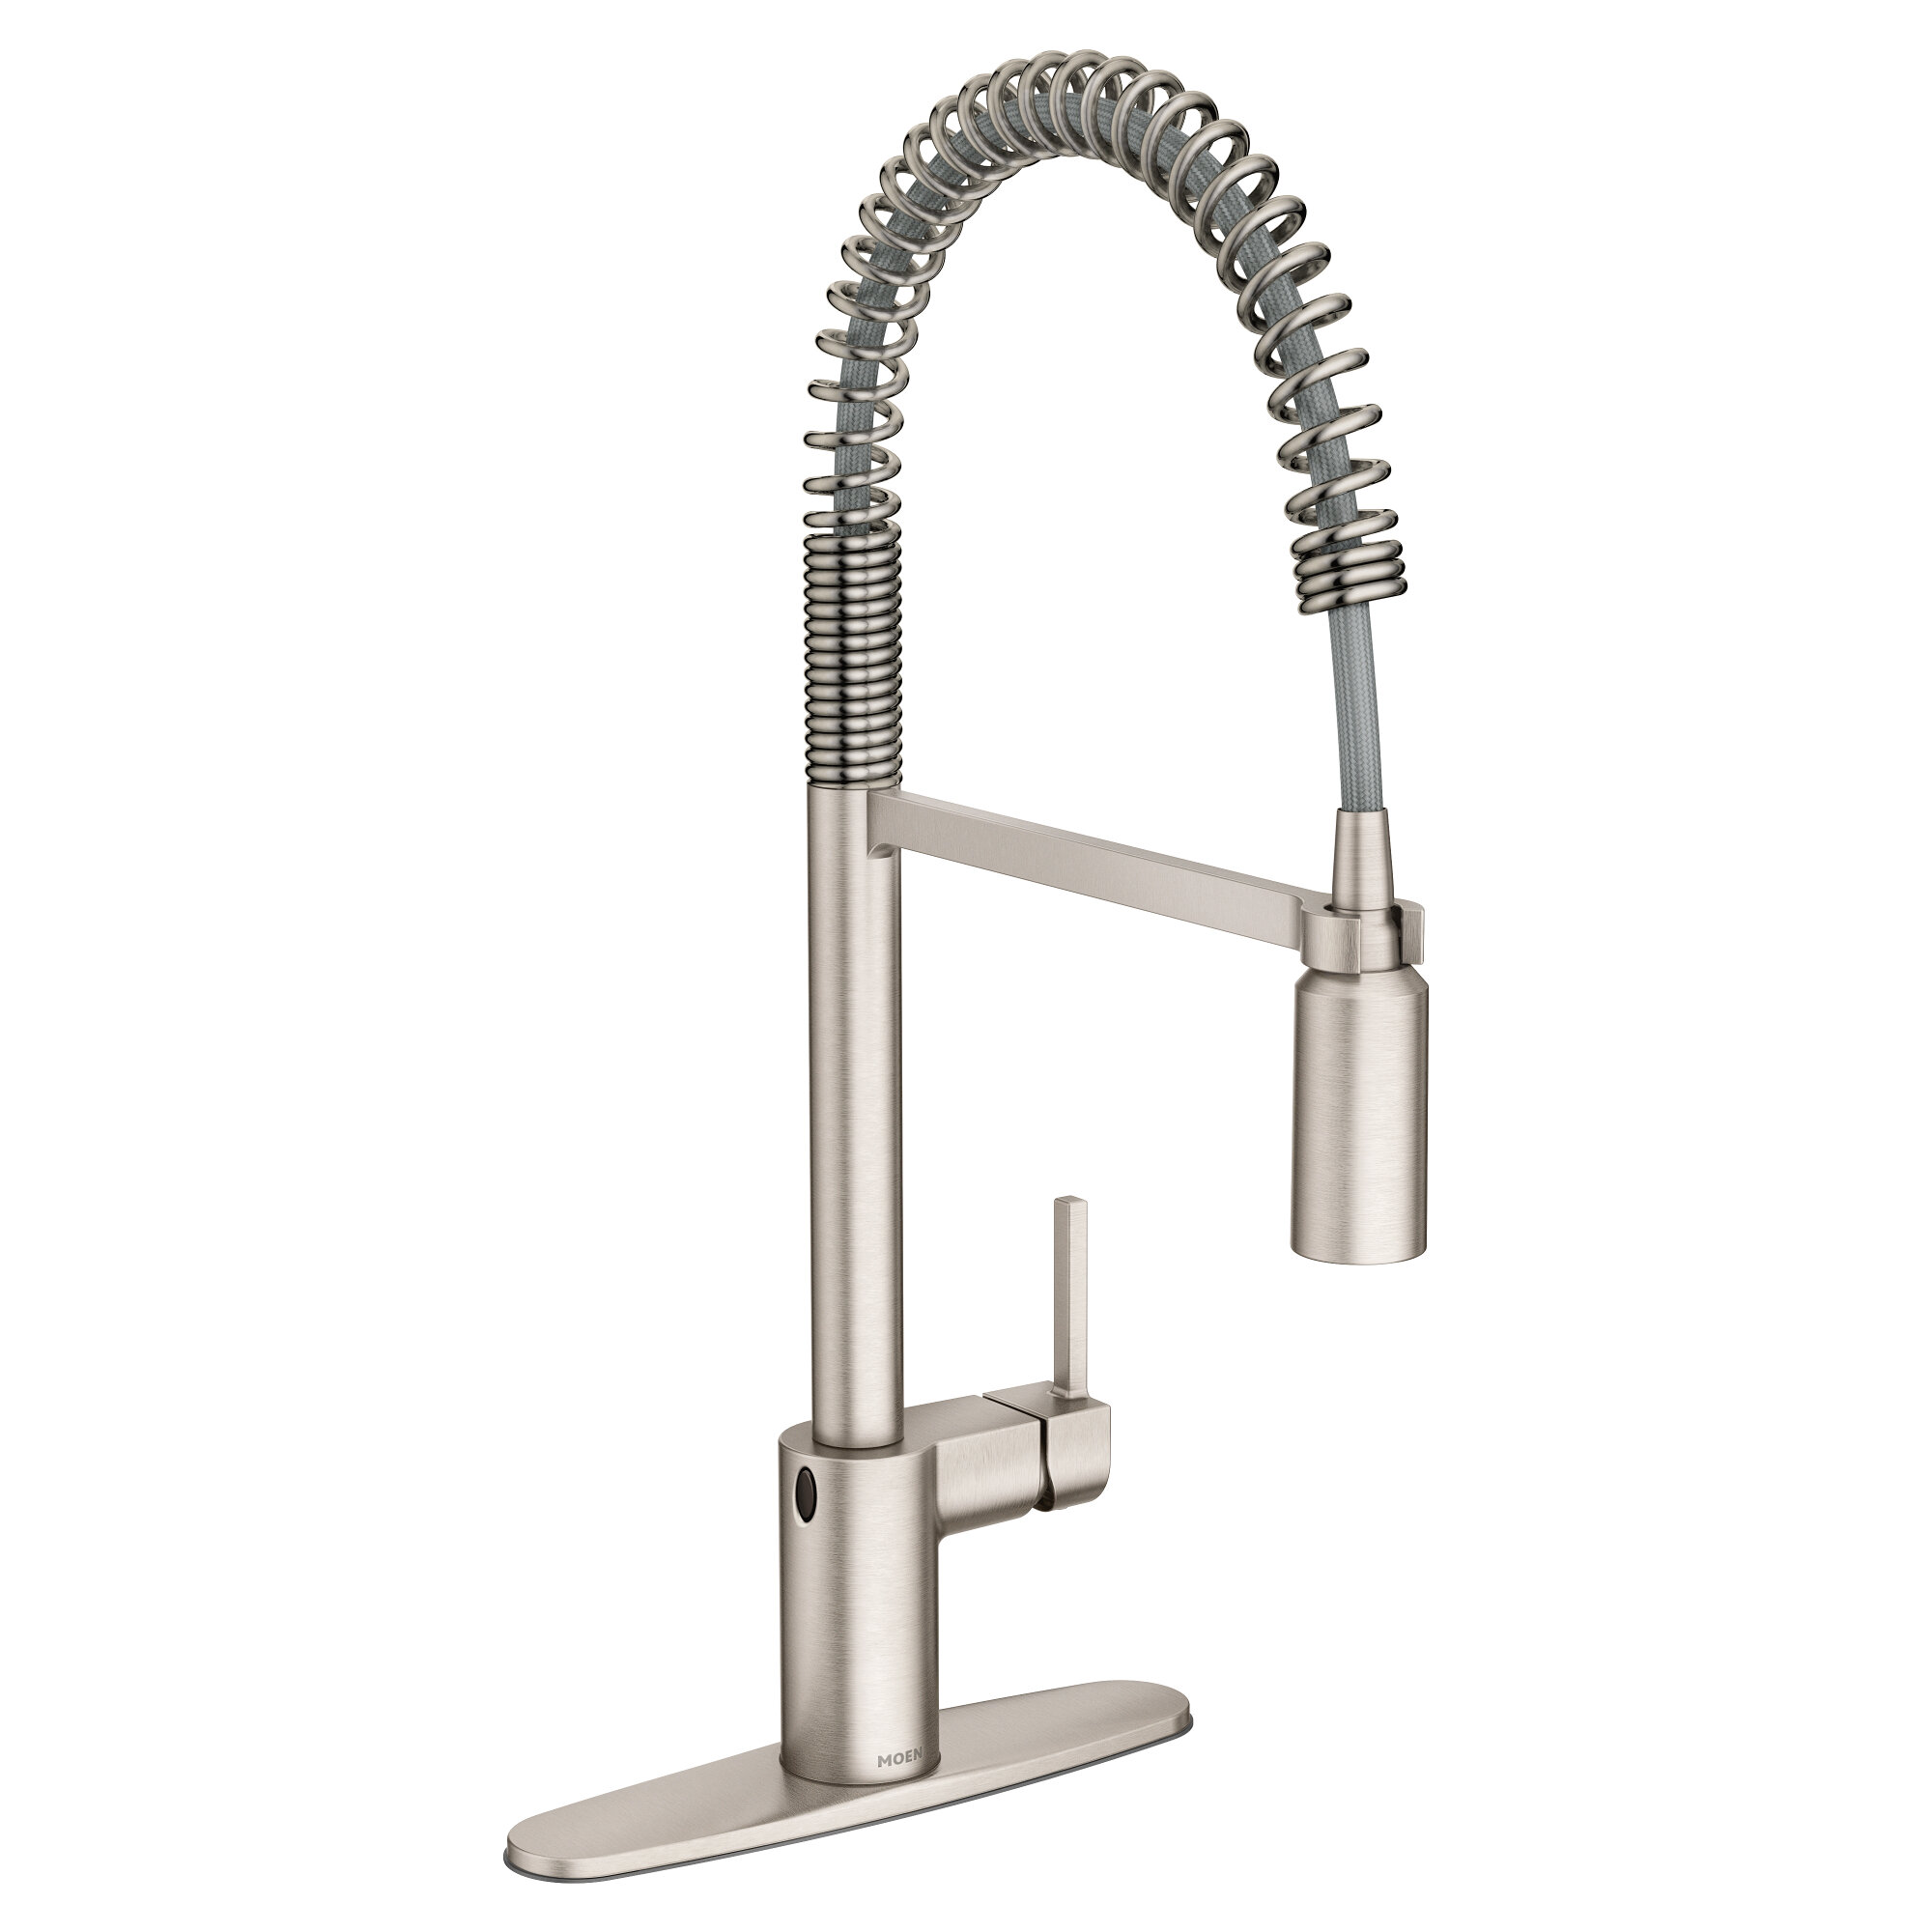 Moen Align Pull Down Touchless Single Handle Kitchen Faucet with ...